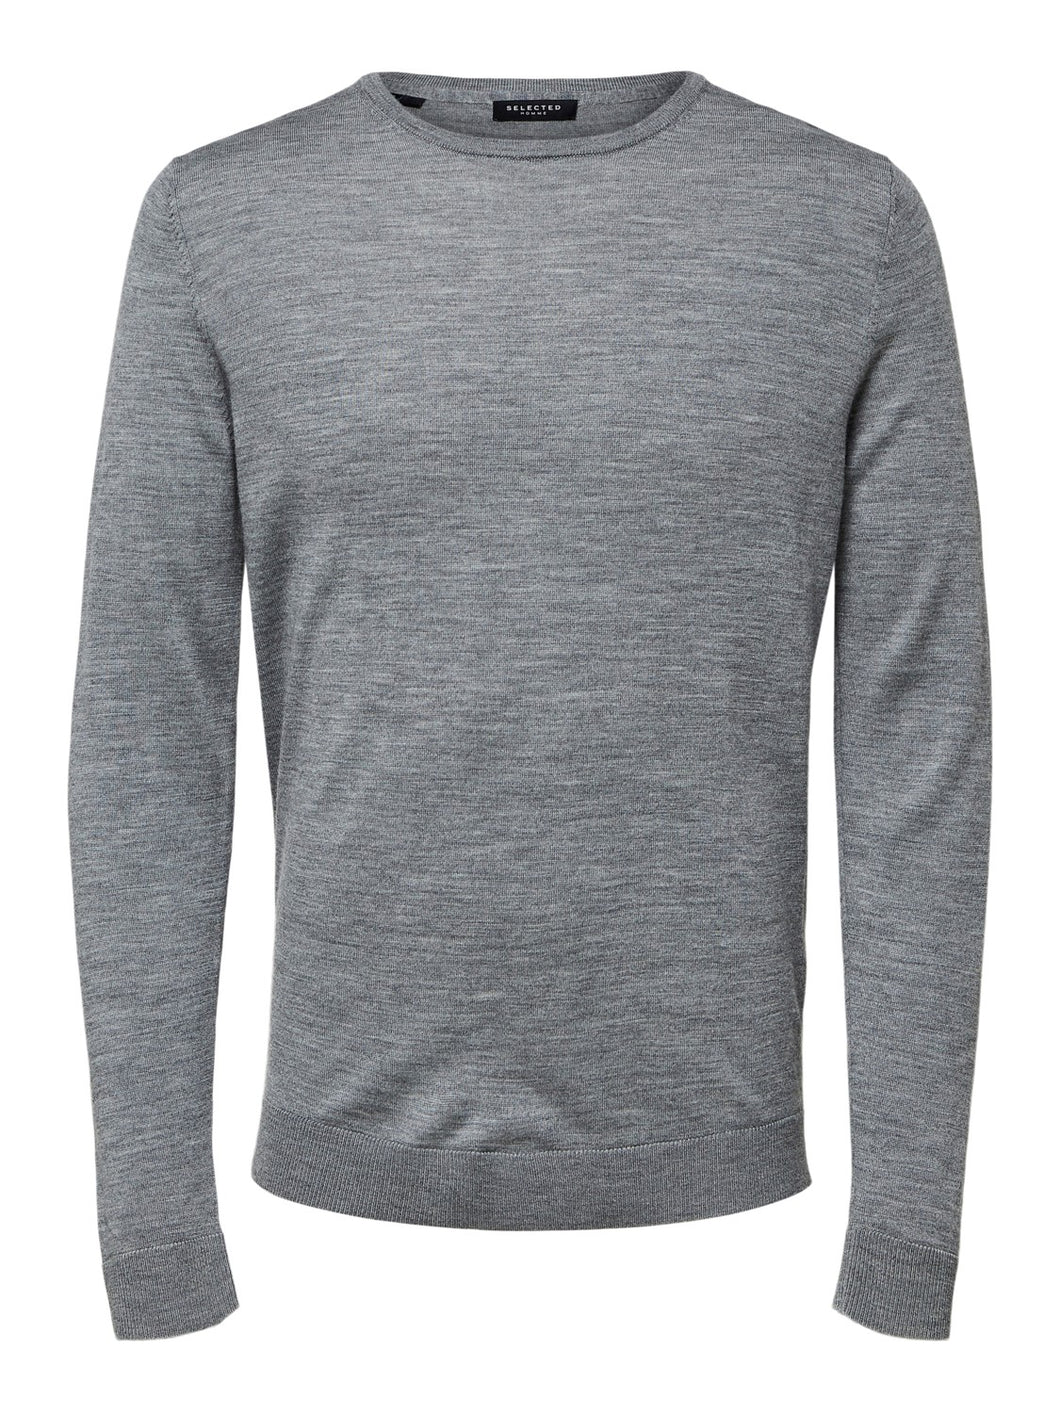 Selected Homme Tower Merino Knit Light Grey